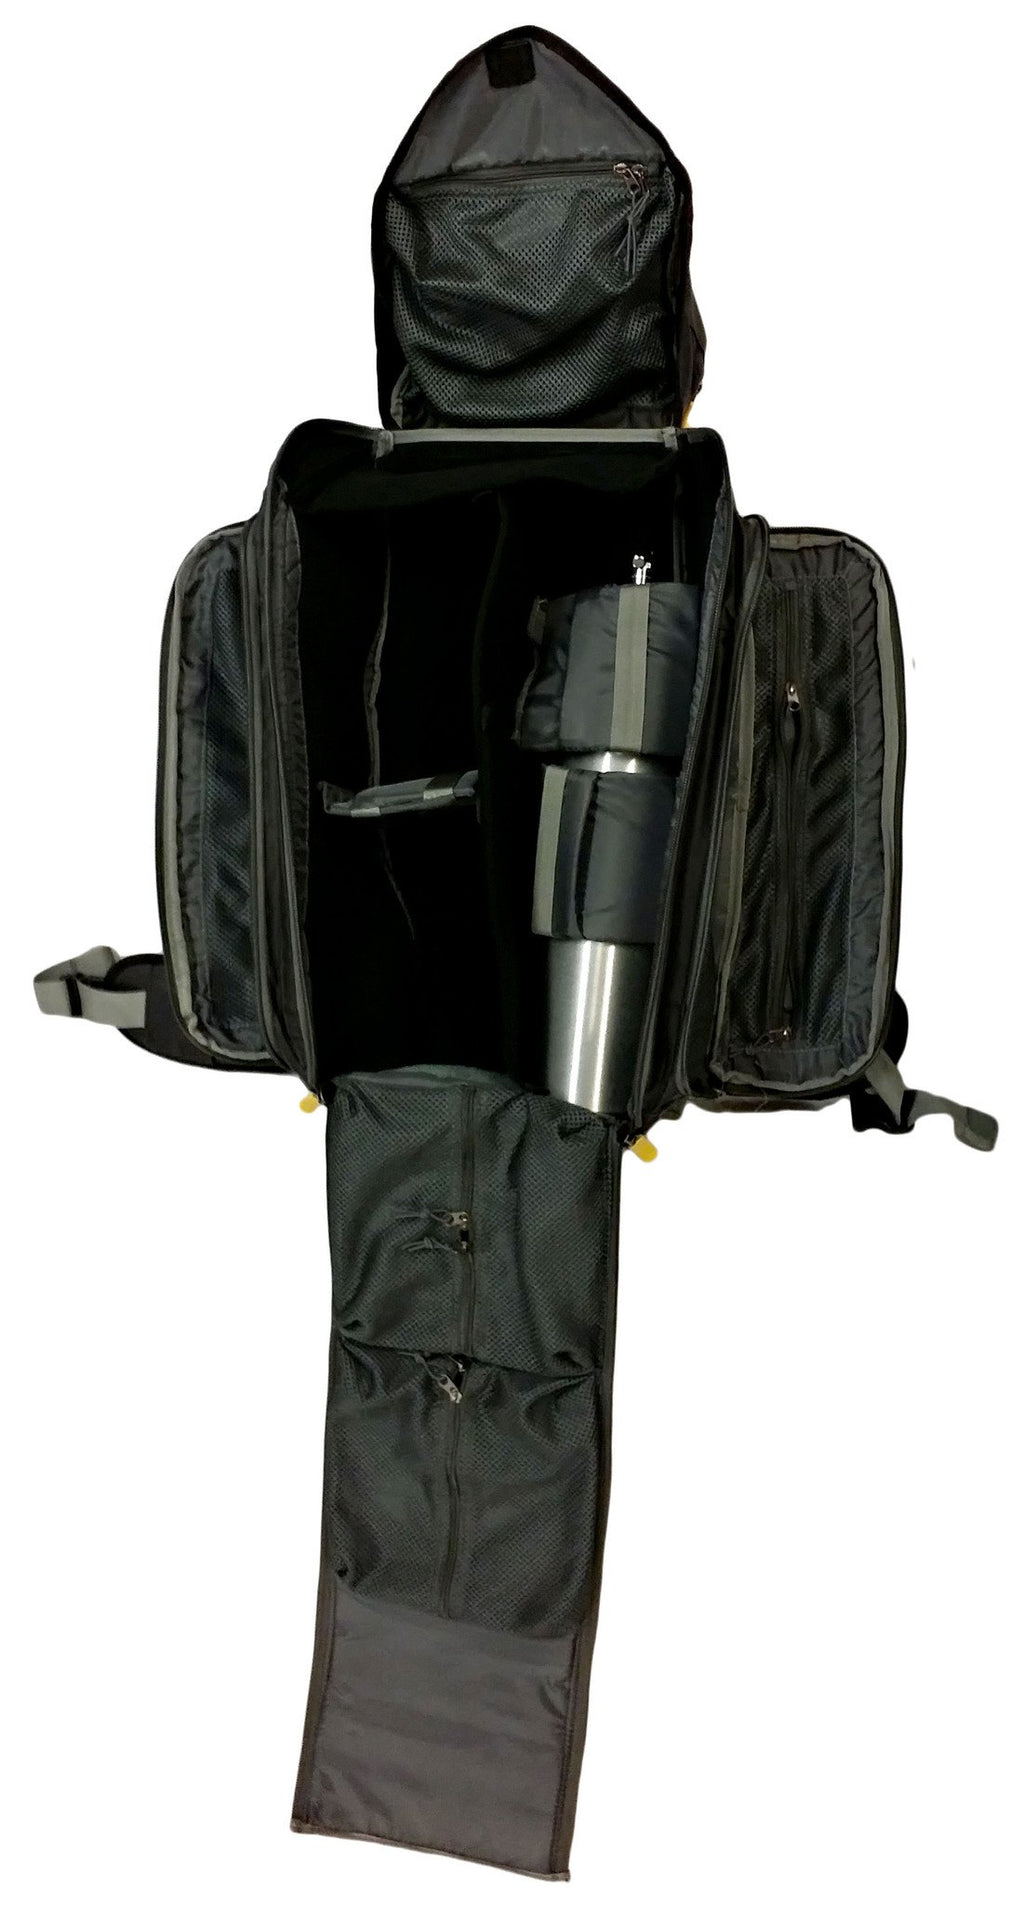 MTR Deluxe Medical Airway Rescue Bag- Impervious